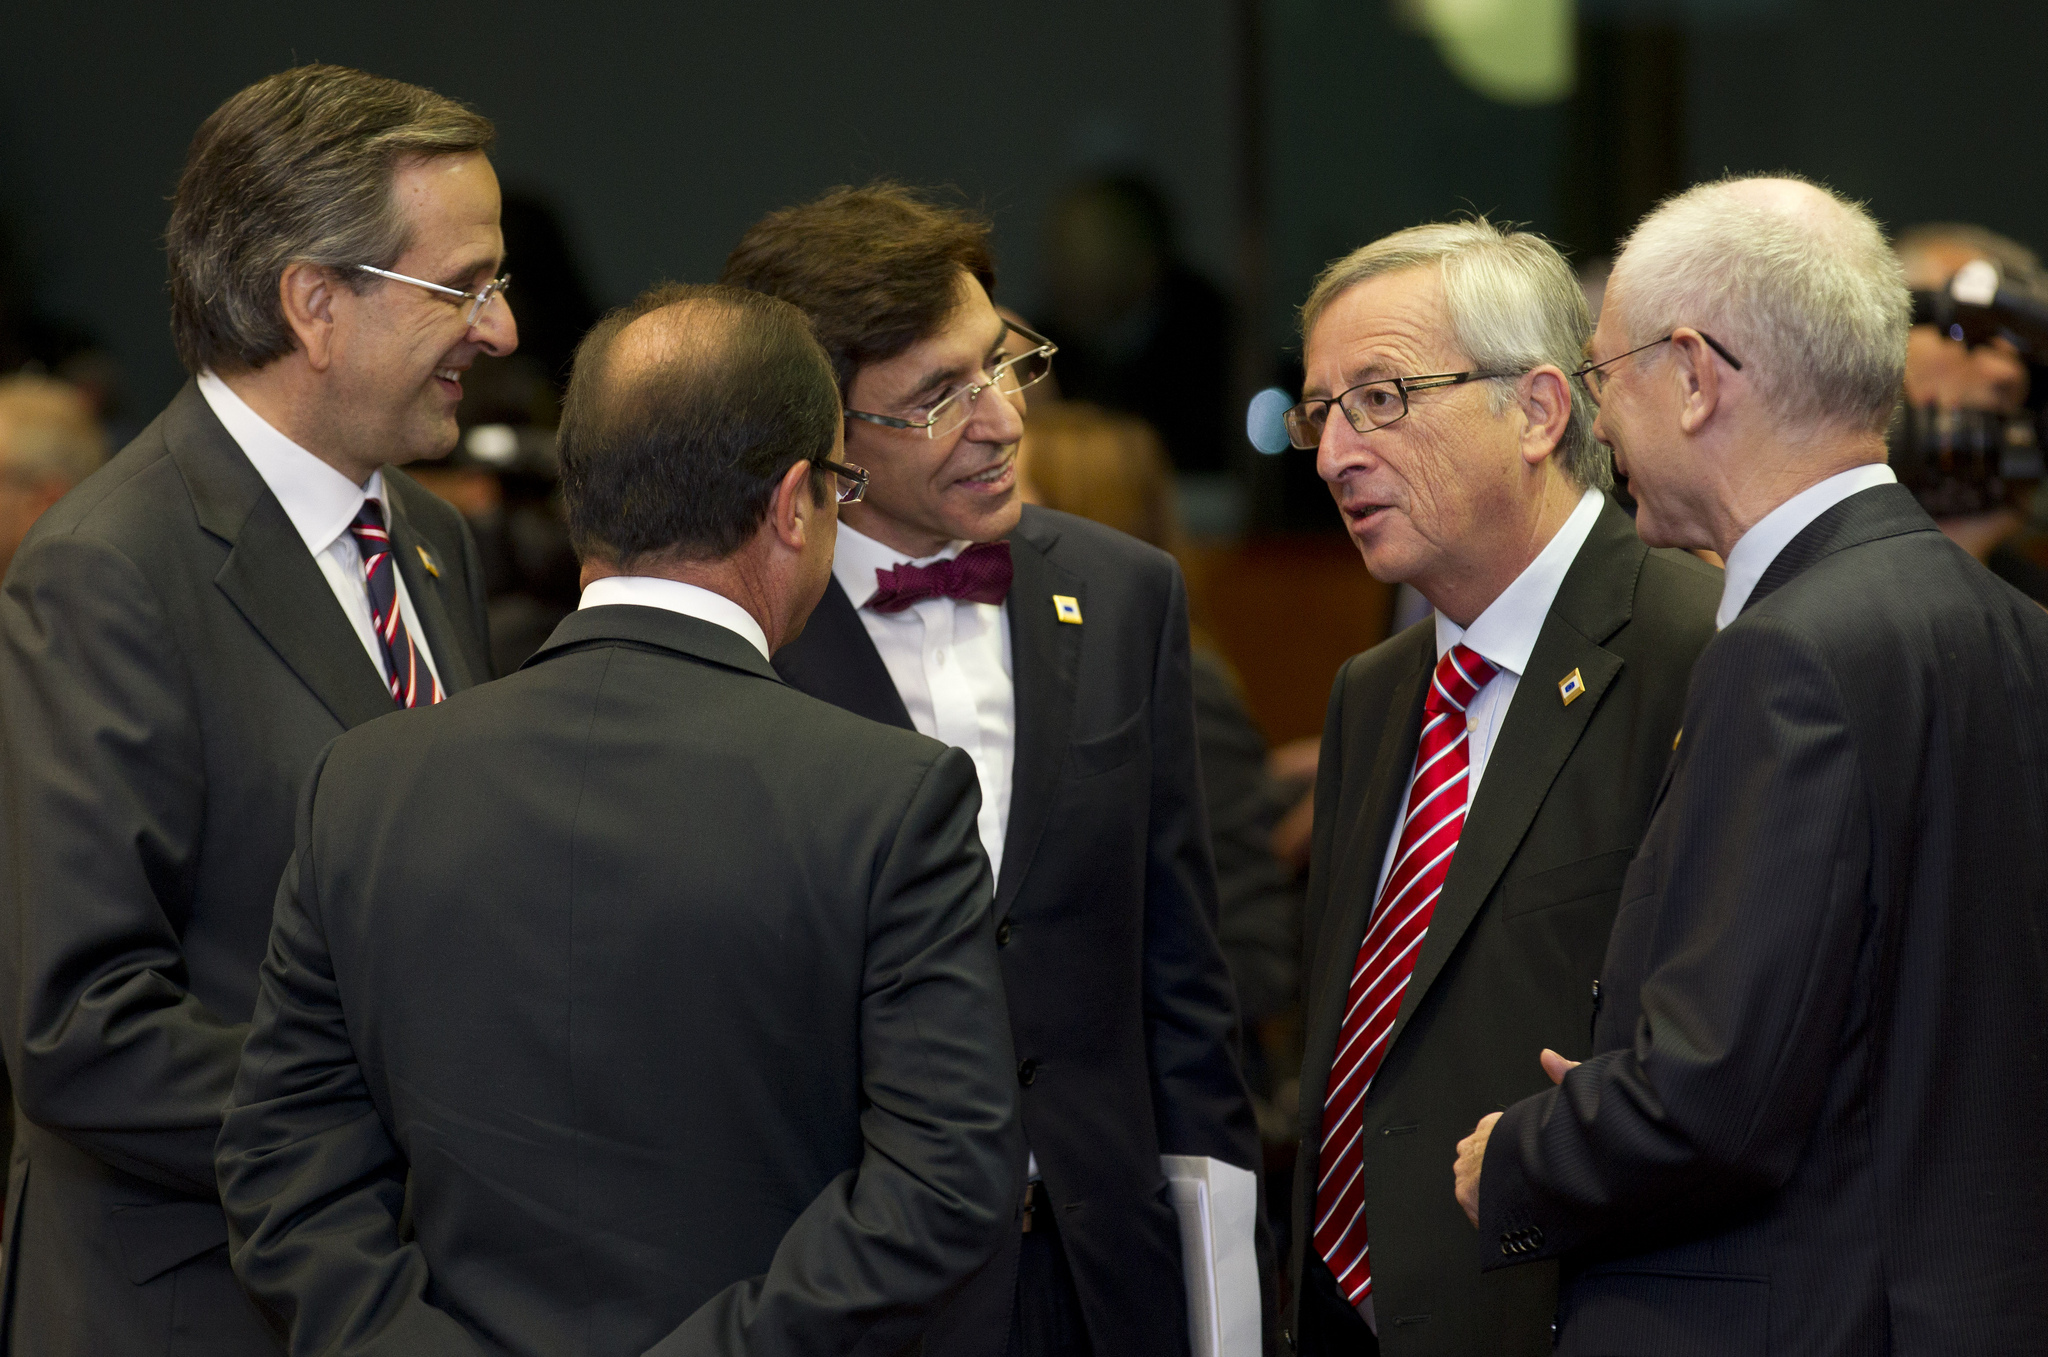 Jean-Claude Juncker with European heads of state [European Council]